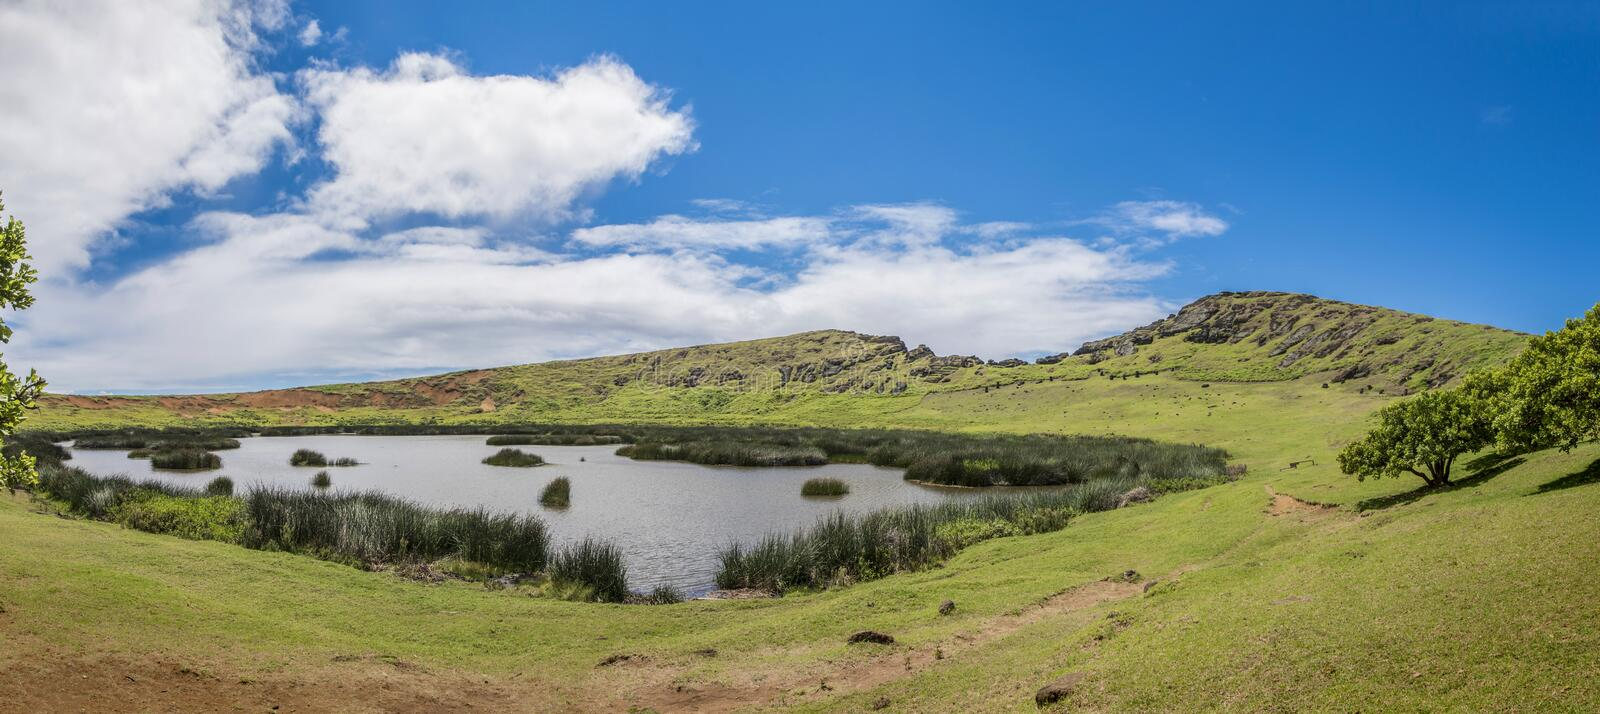 Overview of the interior of the Rano Raraku volcano with underground moais. Path on the hill of the moais of the Rano Raraku volcano where all the moai were royalty free stock photos